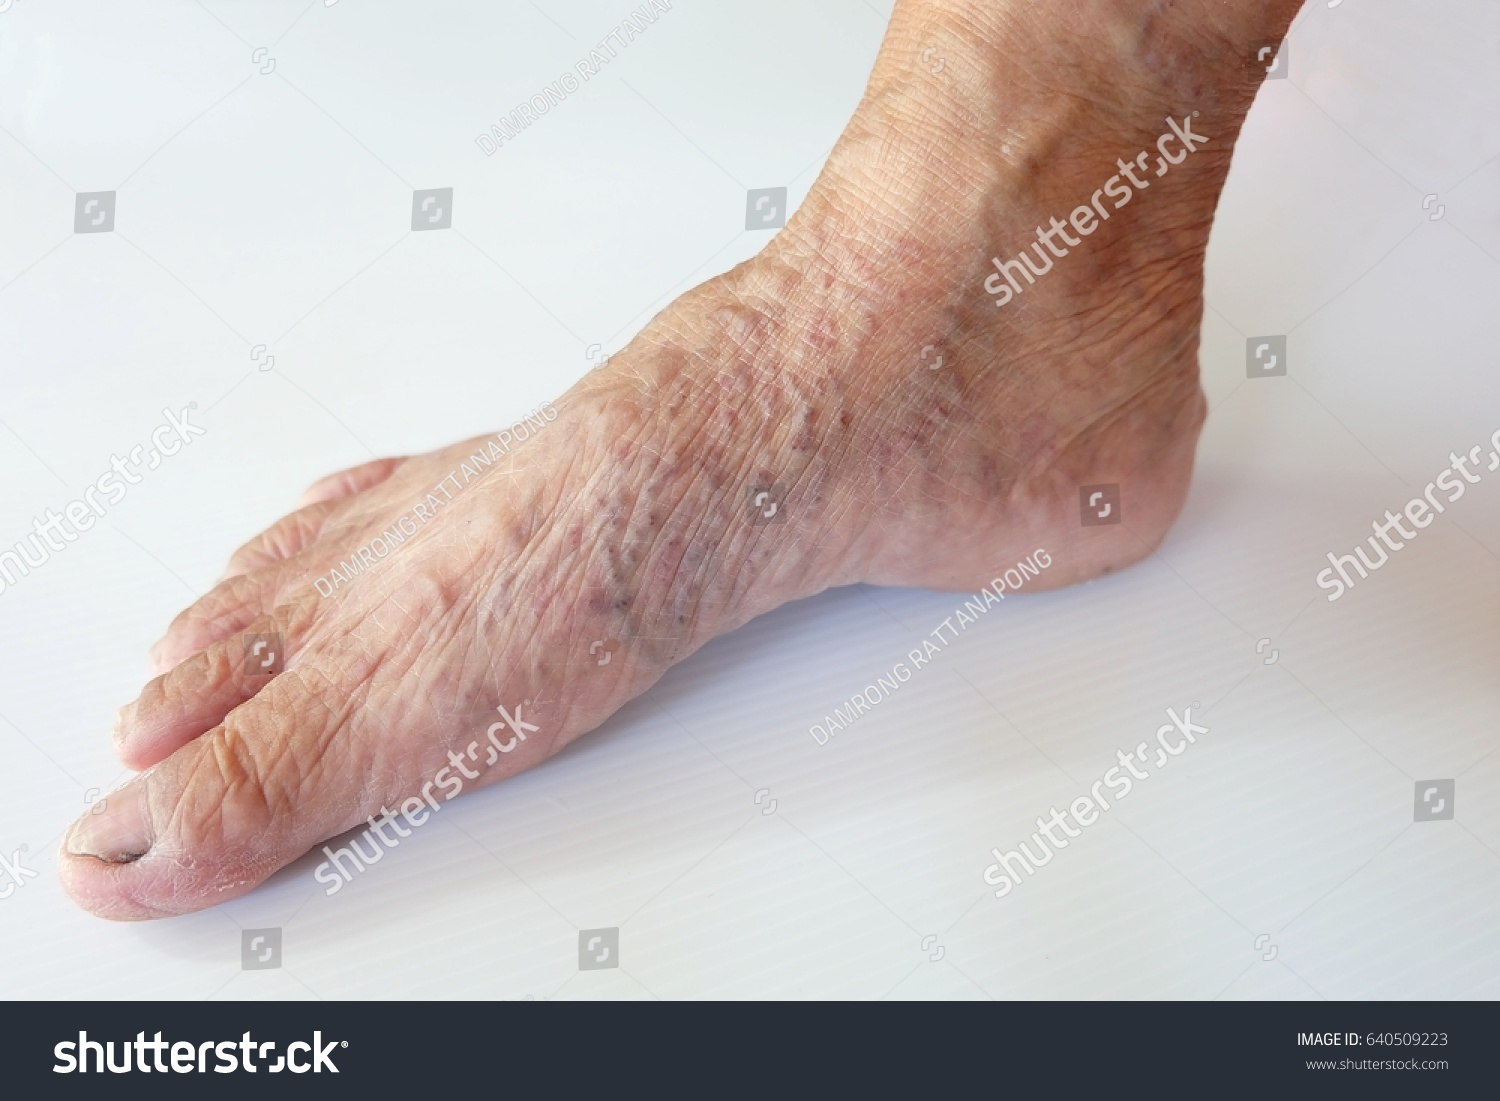 Close Varicose Veins Legs Foot Old Stock Photo Edit Now 640509223